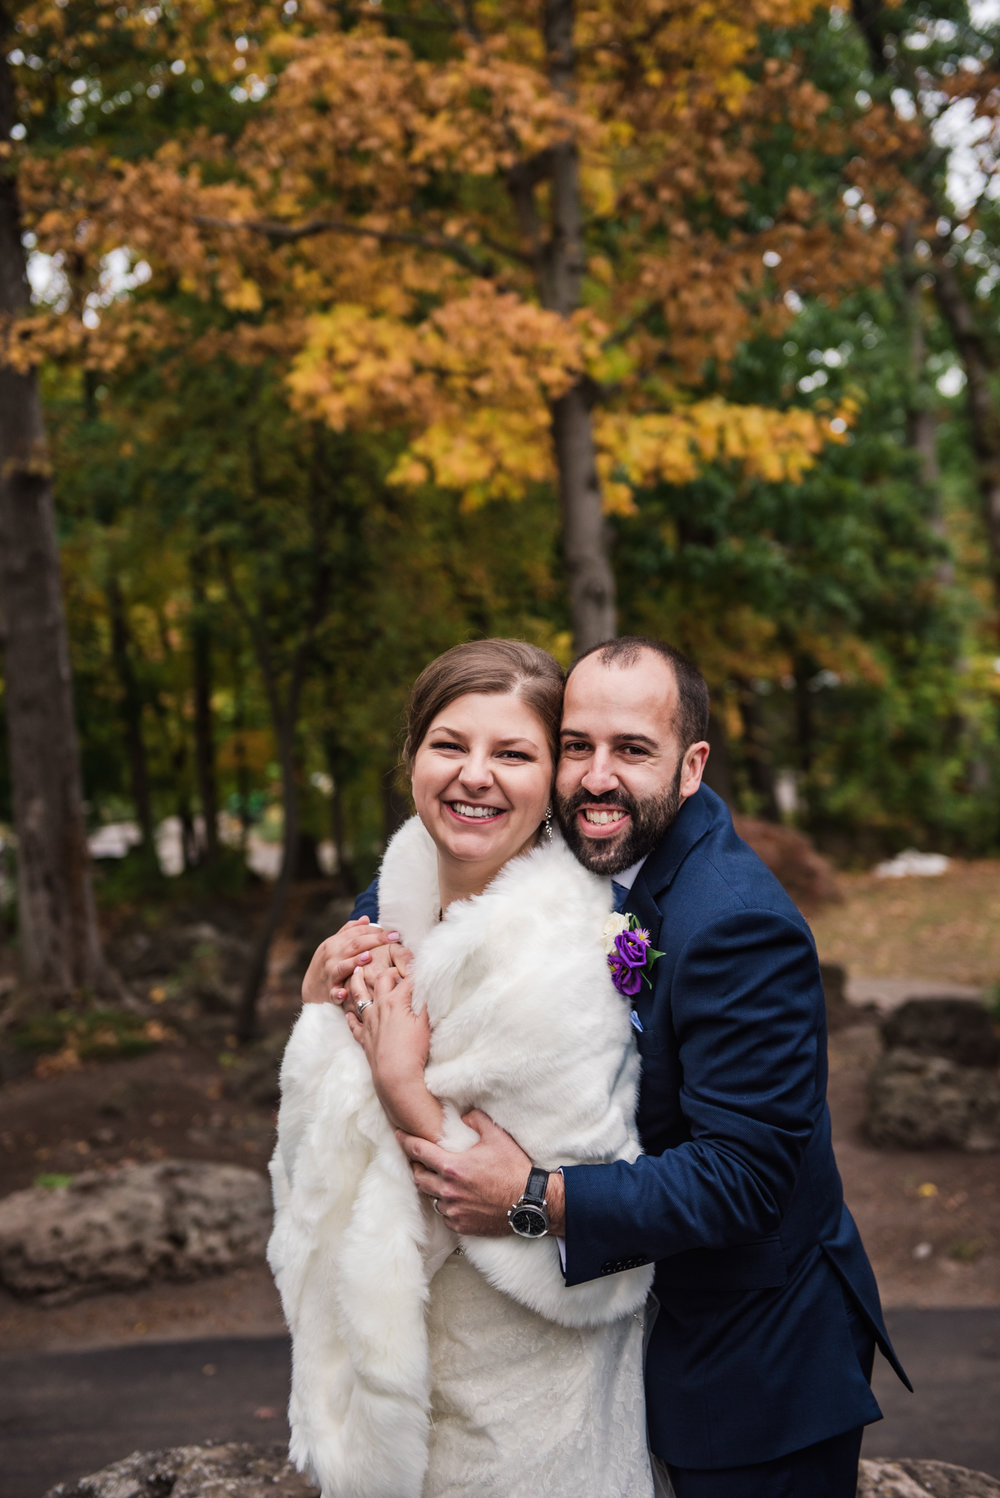 Shadow_Lake_Rochester_Wedding_JILL_STUDIO_Rochester_NY_Photographer_DSC_6123.jpg